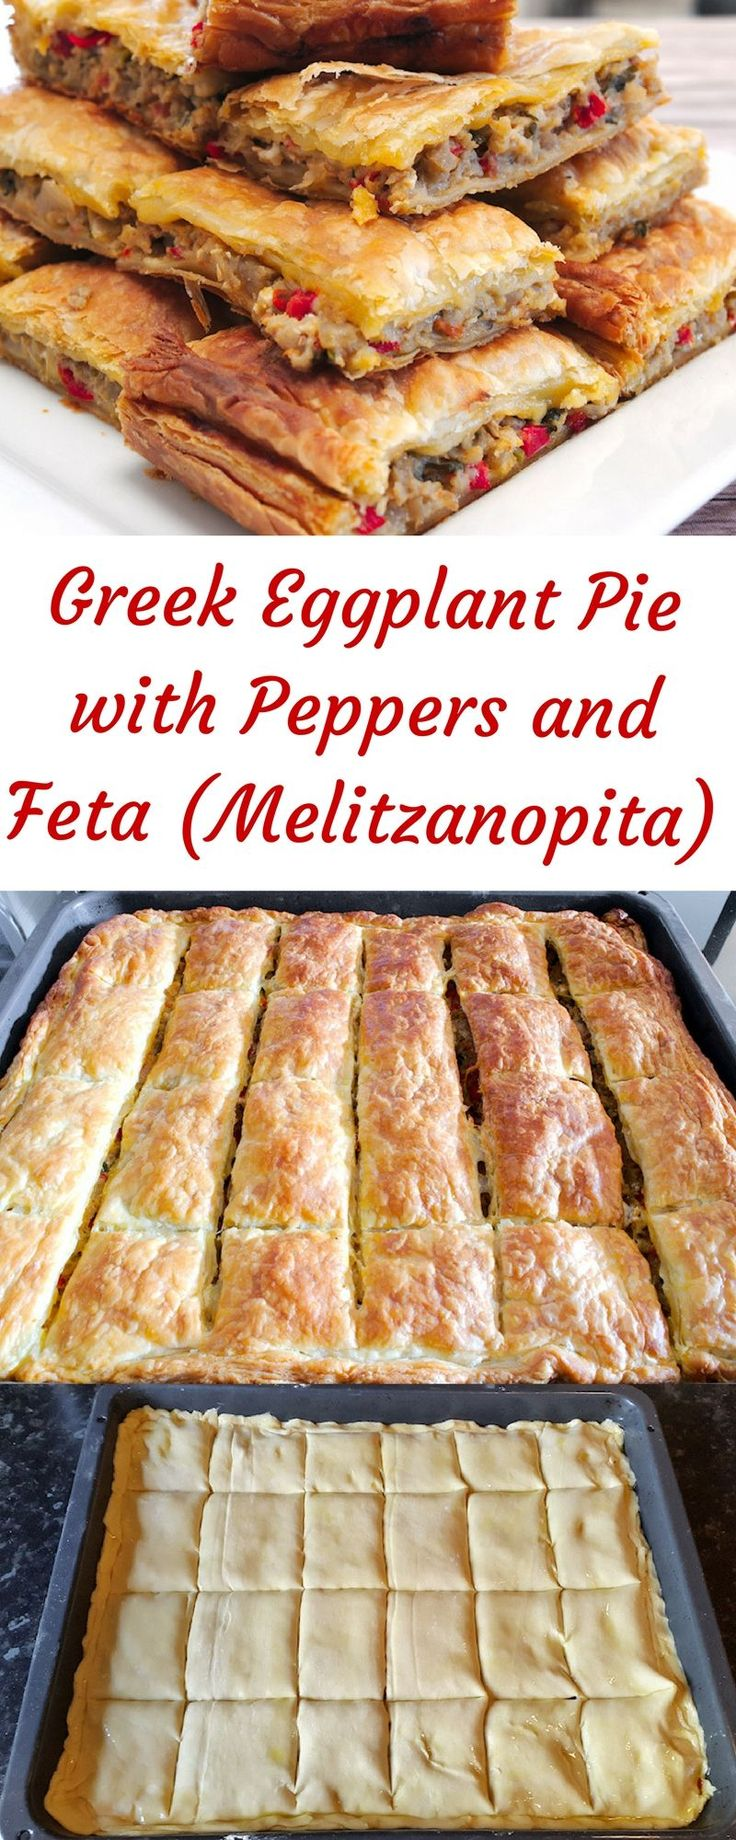 The 25 best greek eggplant recipe ideas on pinterest greek eggplant pie with peppers and feta melitzanopita forumfinder Choice Image